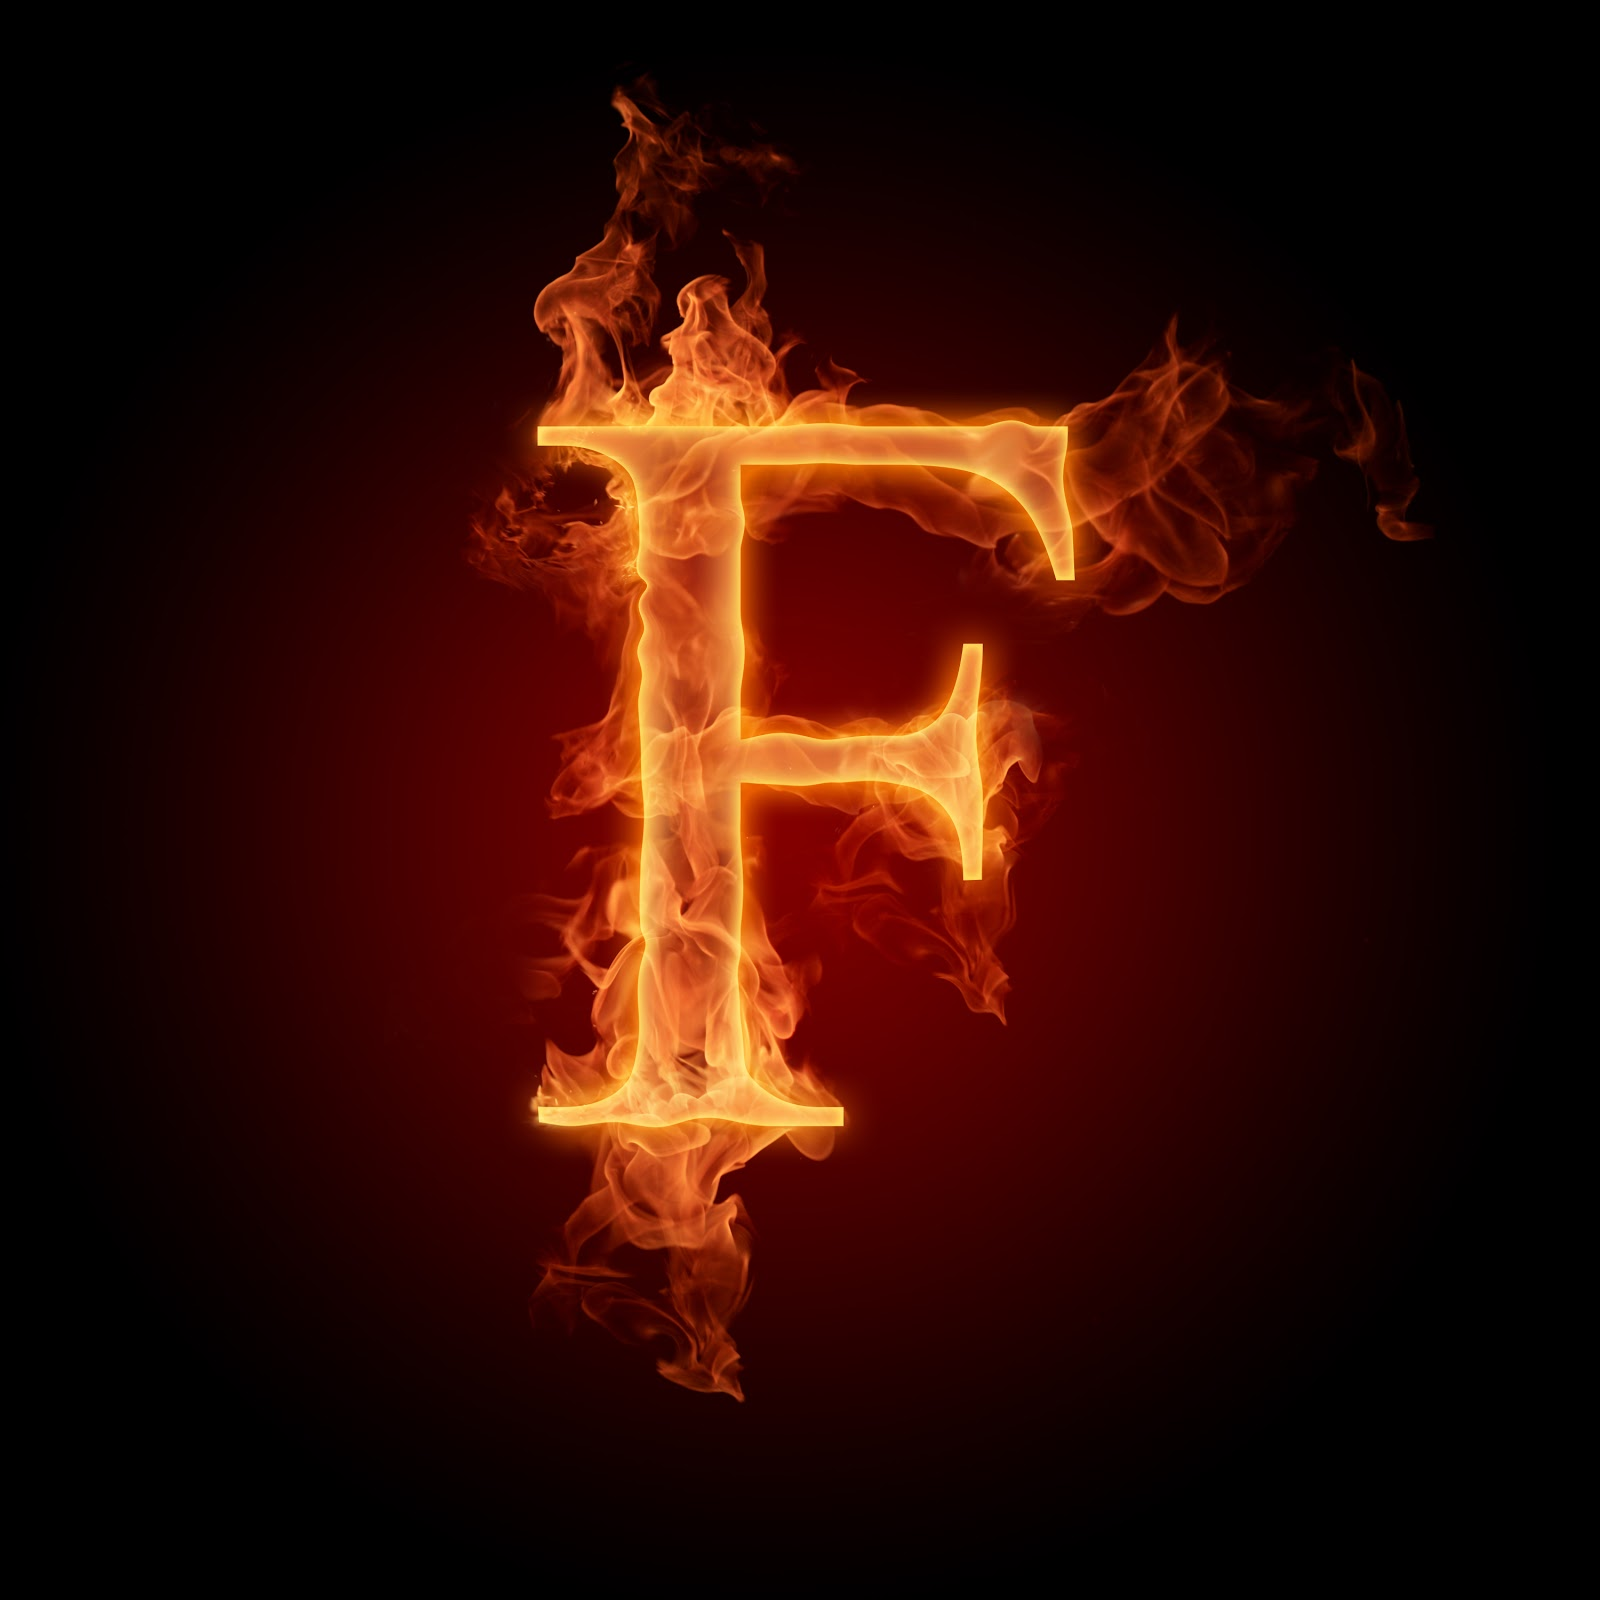 F Wallpaper Mobile